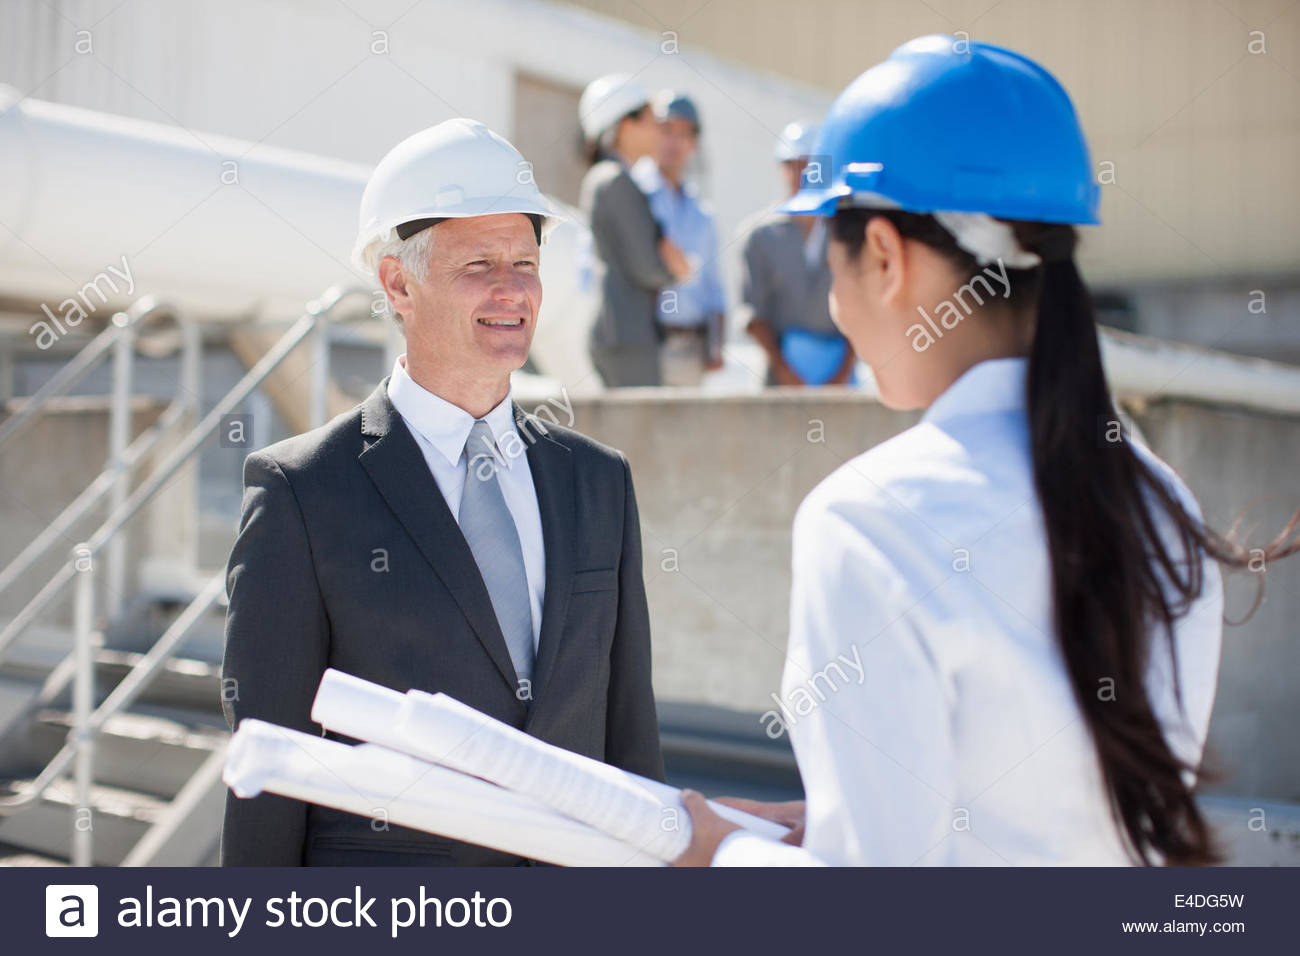 Businesswoman holding blueprints standing with co-workers - Stock Image